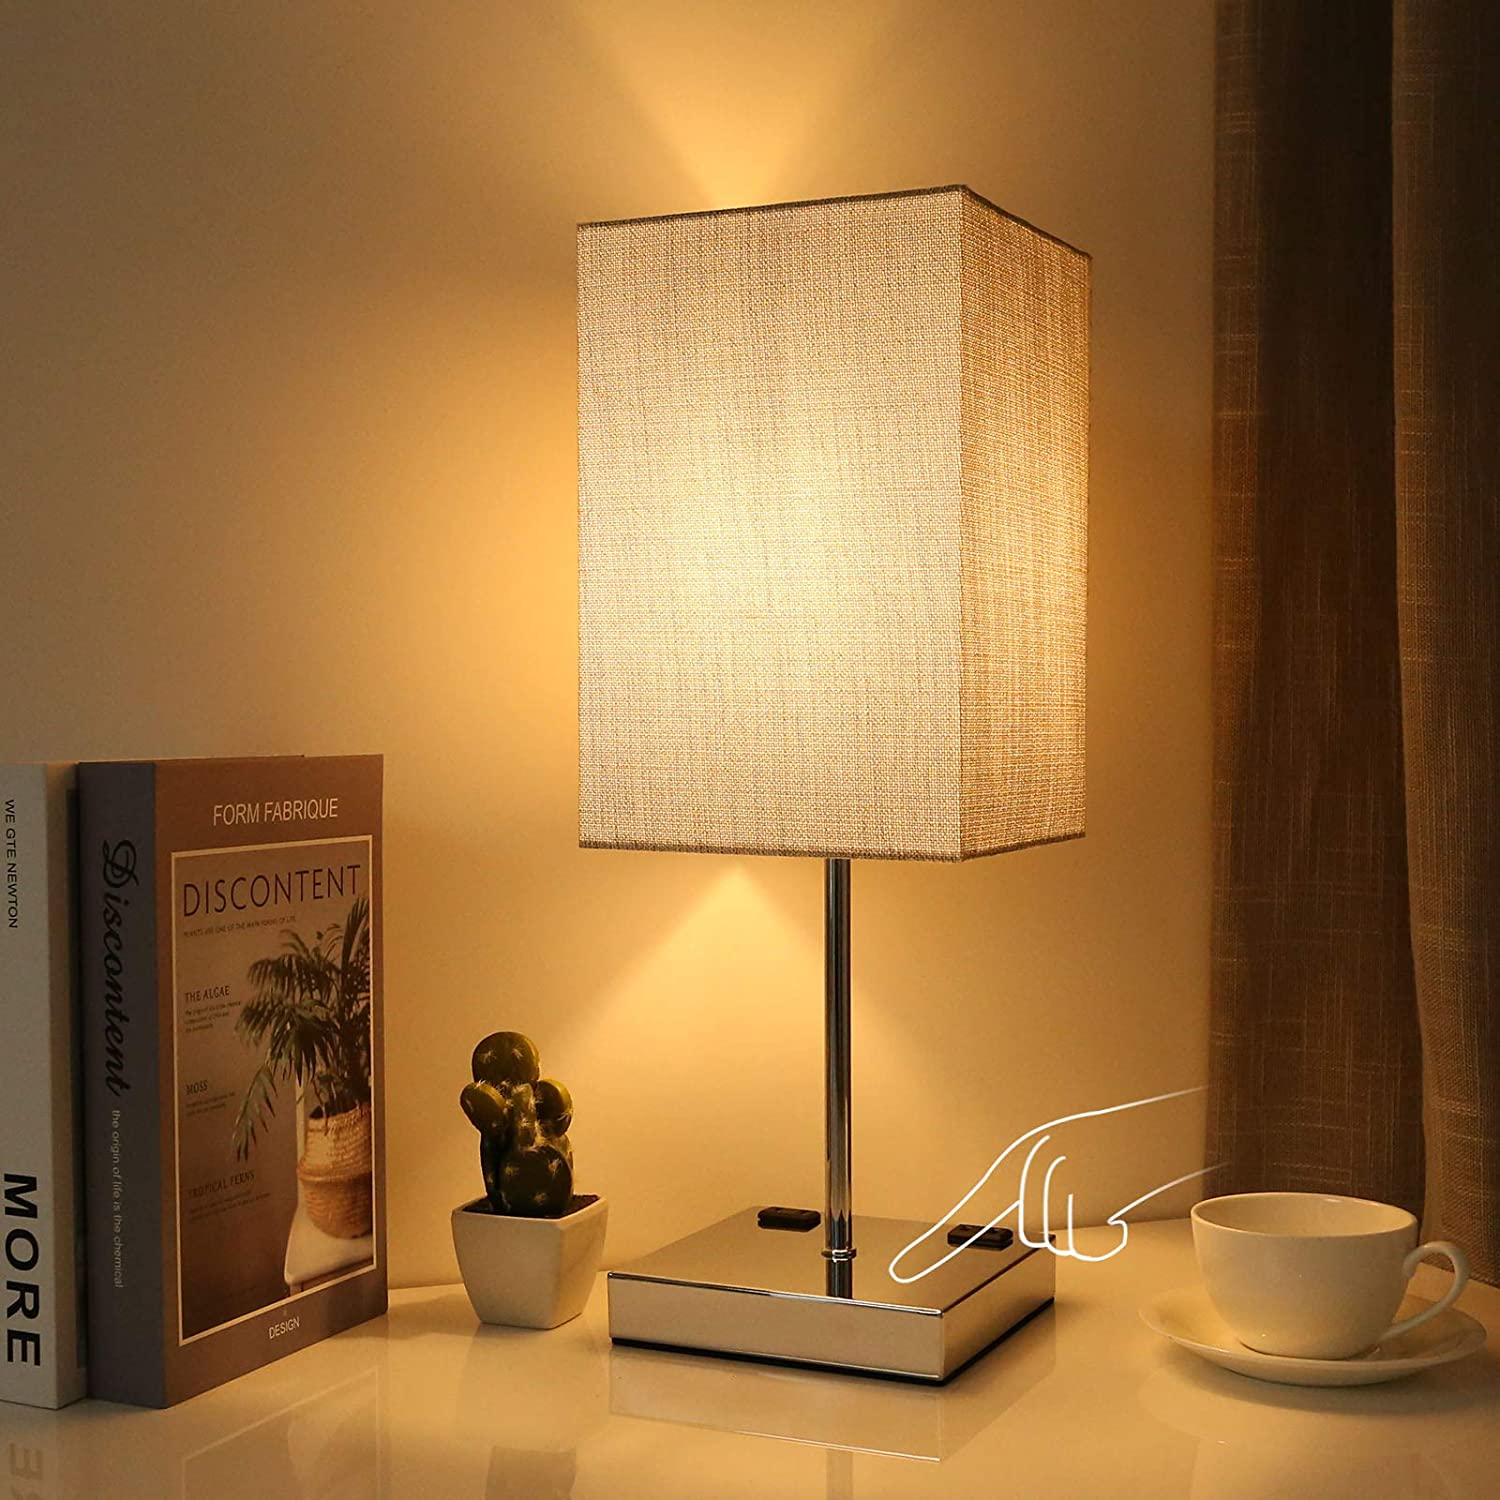 Bedside Table Lamp, 17.5inch Night Table Lamp for Bedroom, 3 Way Touch Control Nightstand Lamp with Outlets, Linen Fabric Shade, Silver Chrome Base, Decor for Desk, Bedroom, Livingroom (Bulb Included)